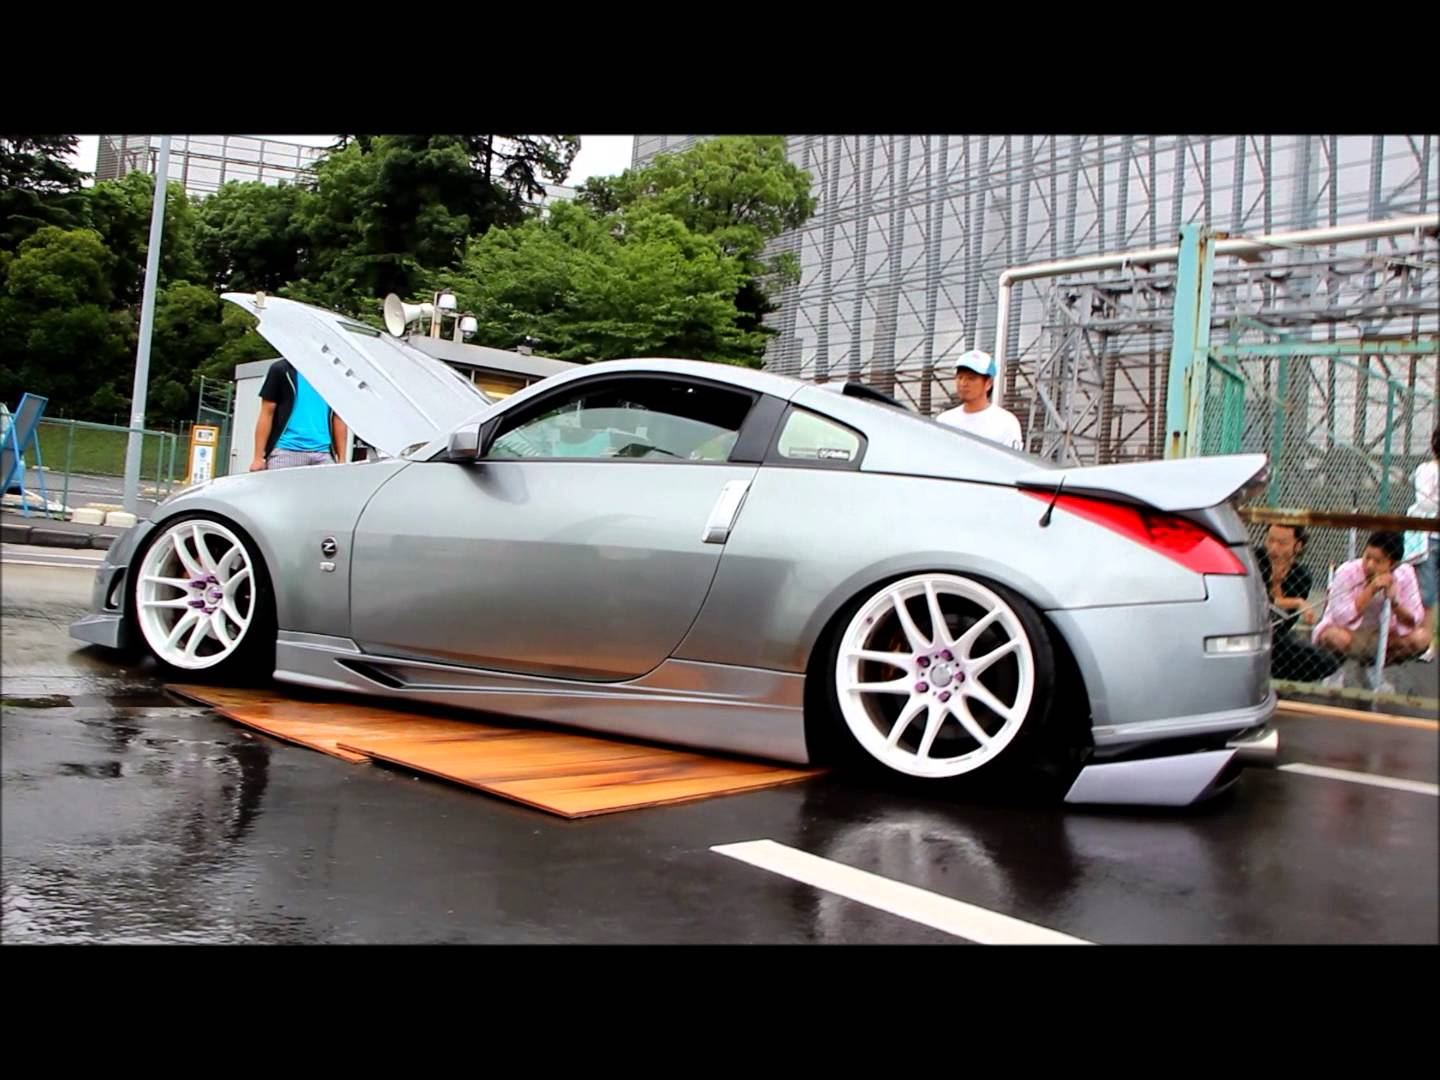 These Cars Are Too Low For Their Own Good: Japanese Low Car Fails And  Scrapes Are Scary!